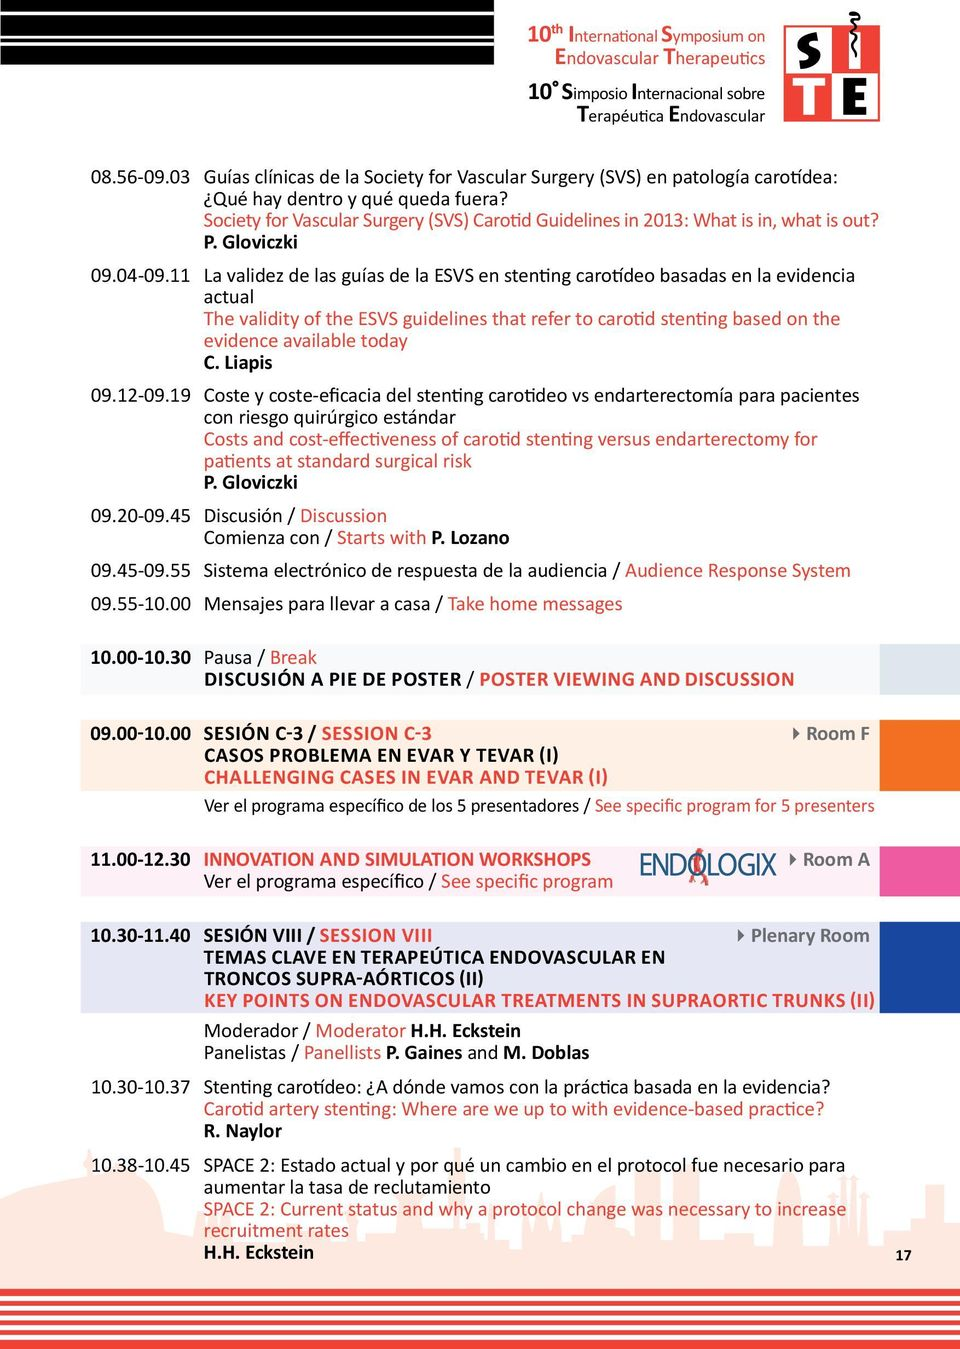 Society for Vascular Surgery (SVS) Carotid Guidelines in 2013: What is in, what is out? P. Gloviczki 09.04-09.